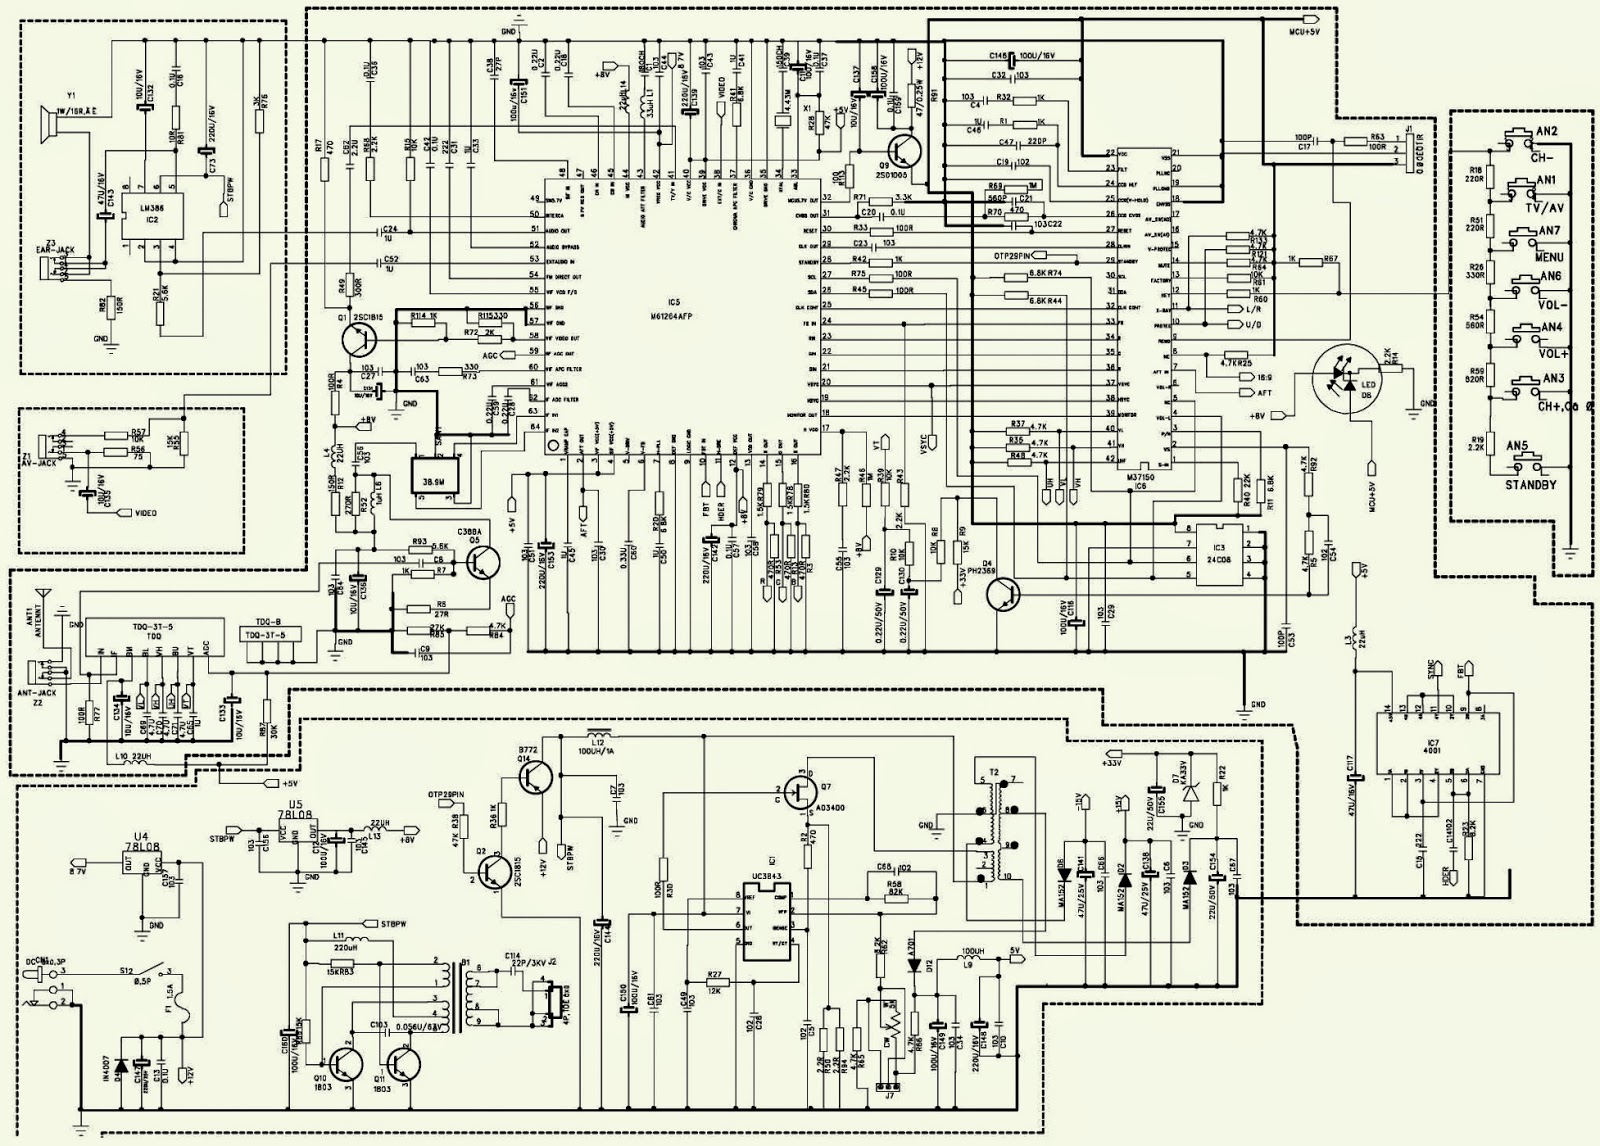 t con board circuit diagram today wiring diagram update rh 9 2 iortn pilotbabaji de